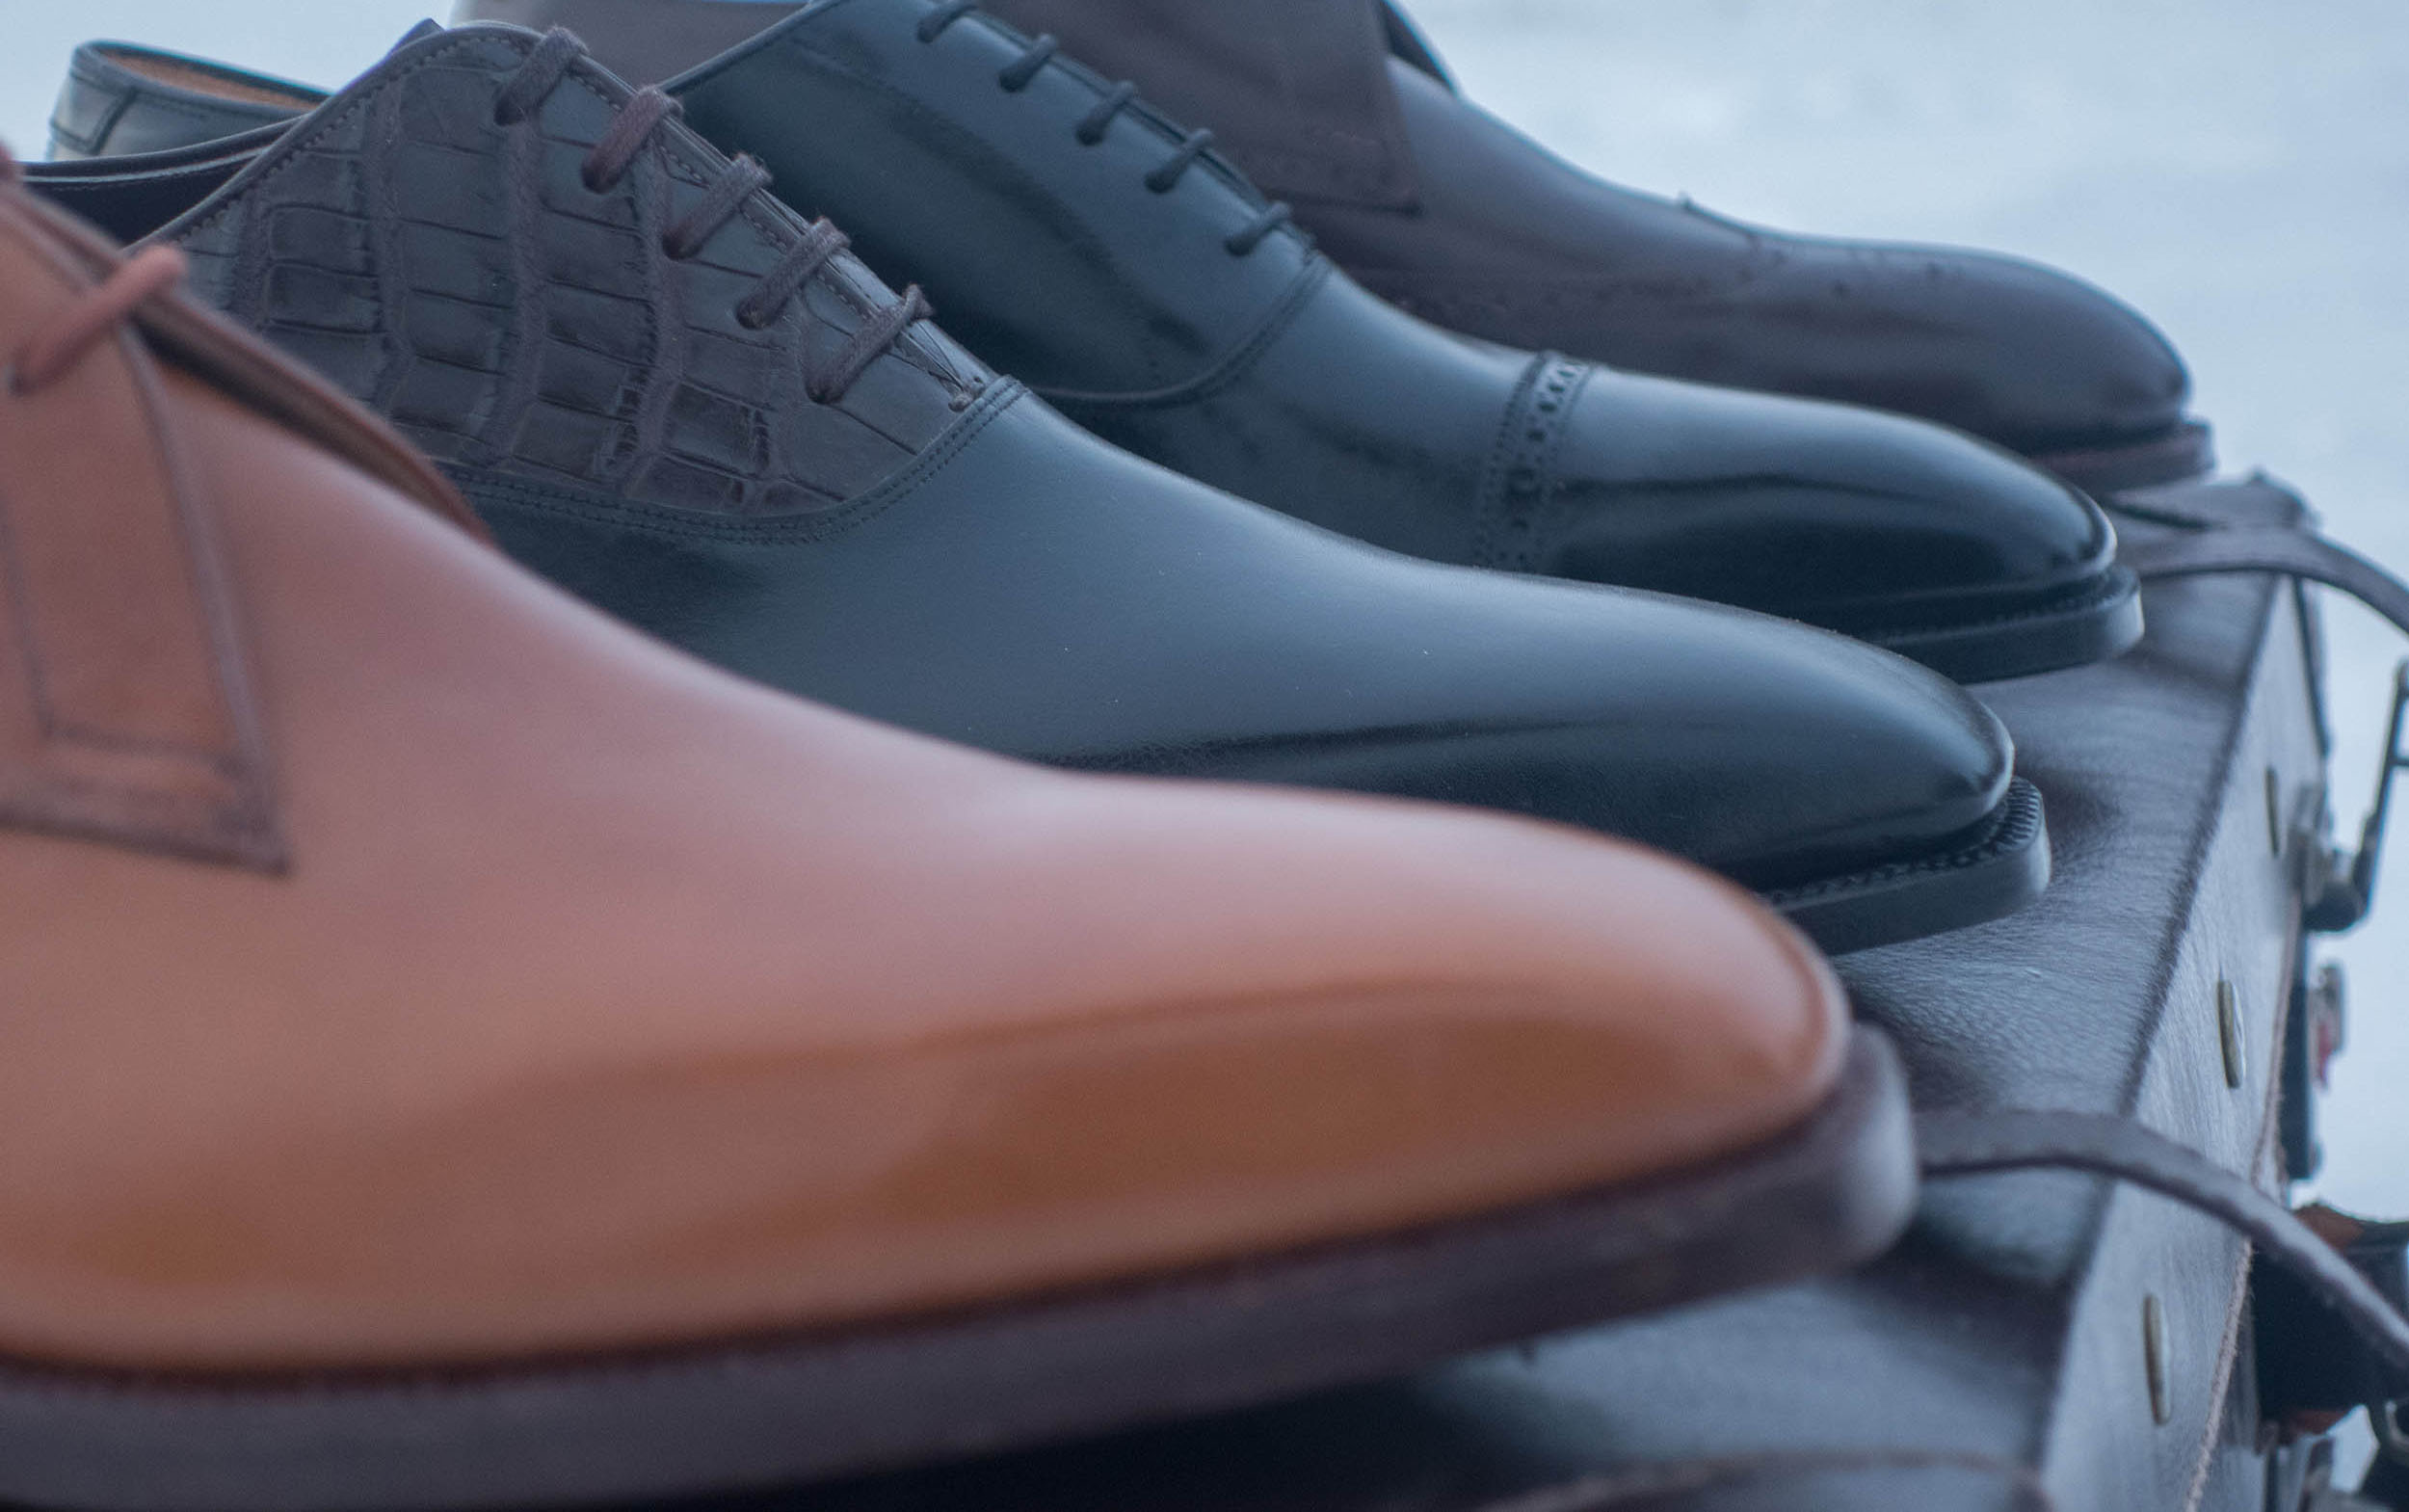 Bespoke shoes and boots